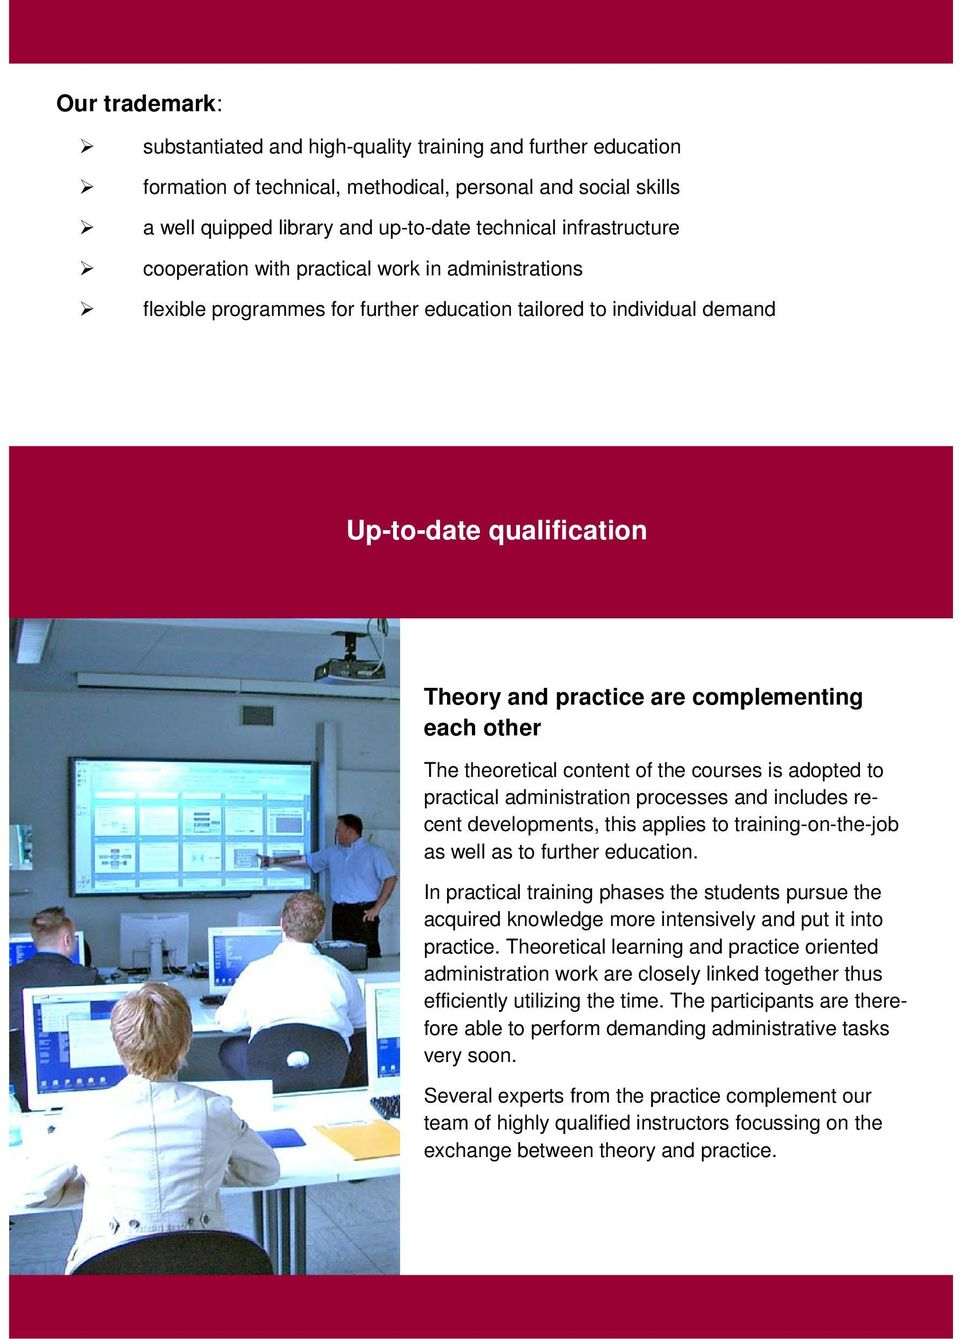 Up-to-date der Verwaltung Höhe qualification der in Zeit Rheinland-Pfalz Theory and practice are complementing each other The theoretical content of the courses is adopted to practical administration